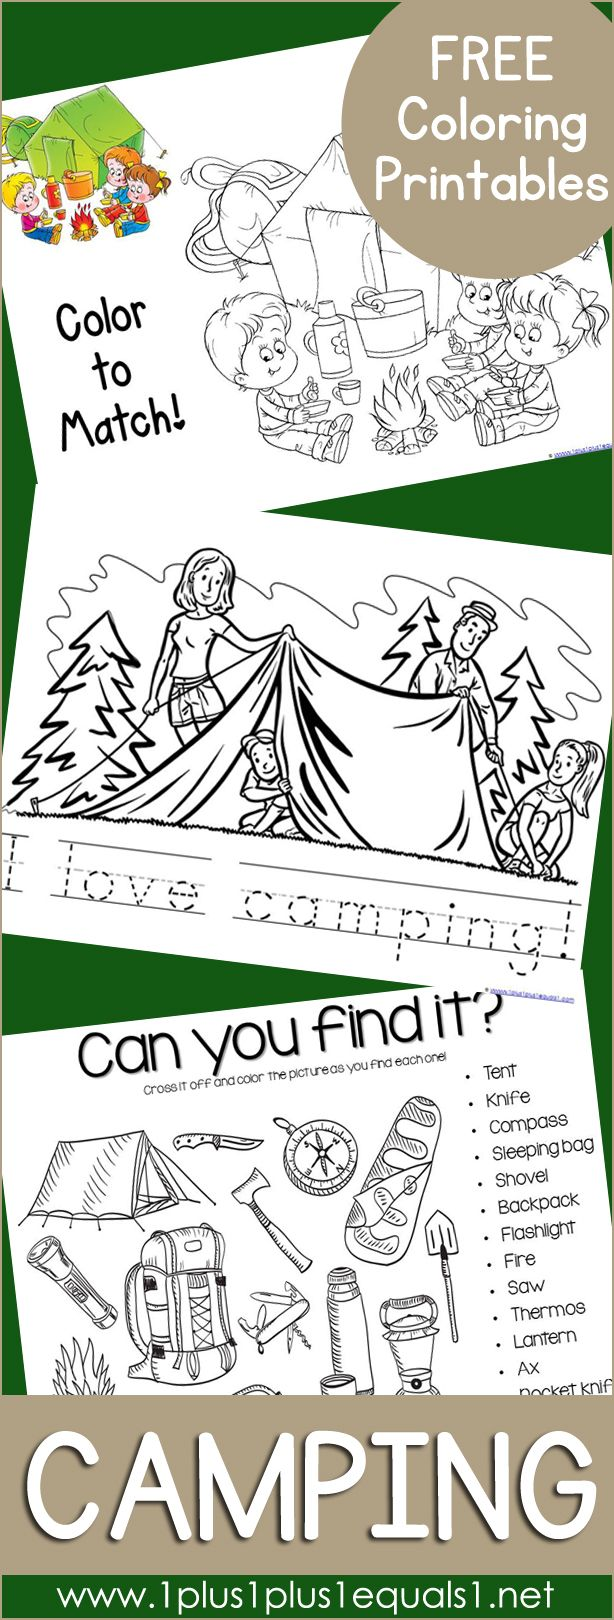 Free coloring pages camping theme - Free Camping Coloring Printables Coloring Activities And Coloring Pages For Kids